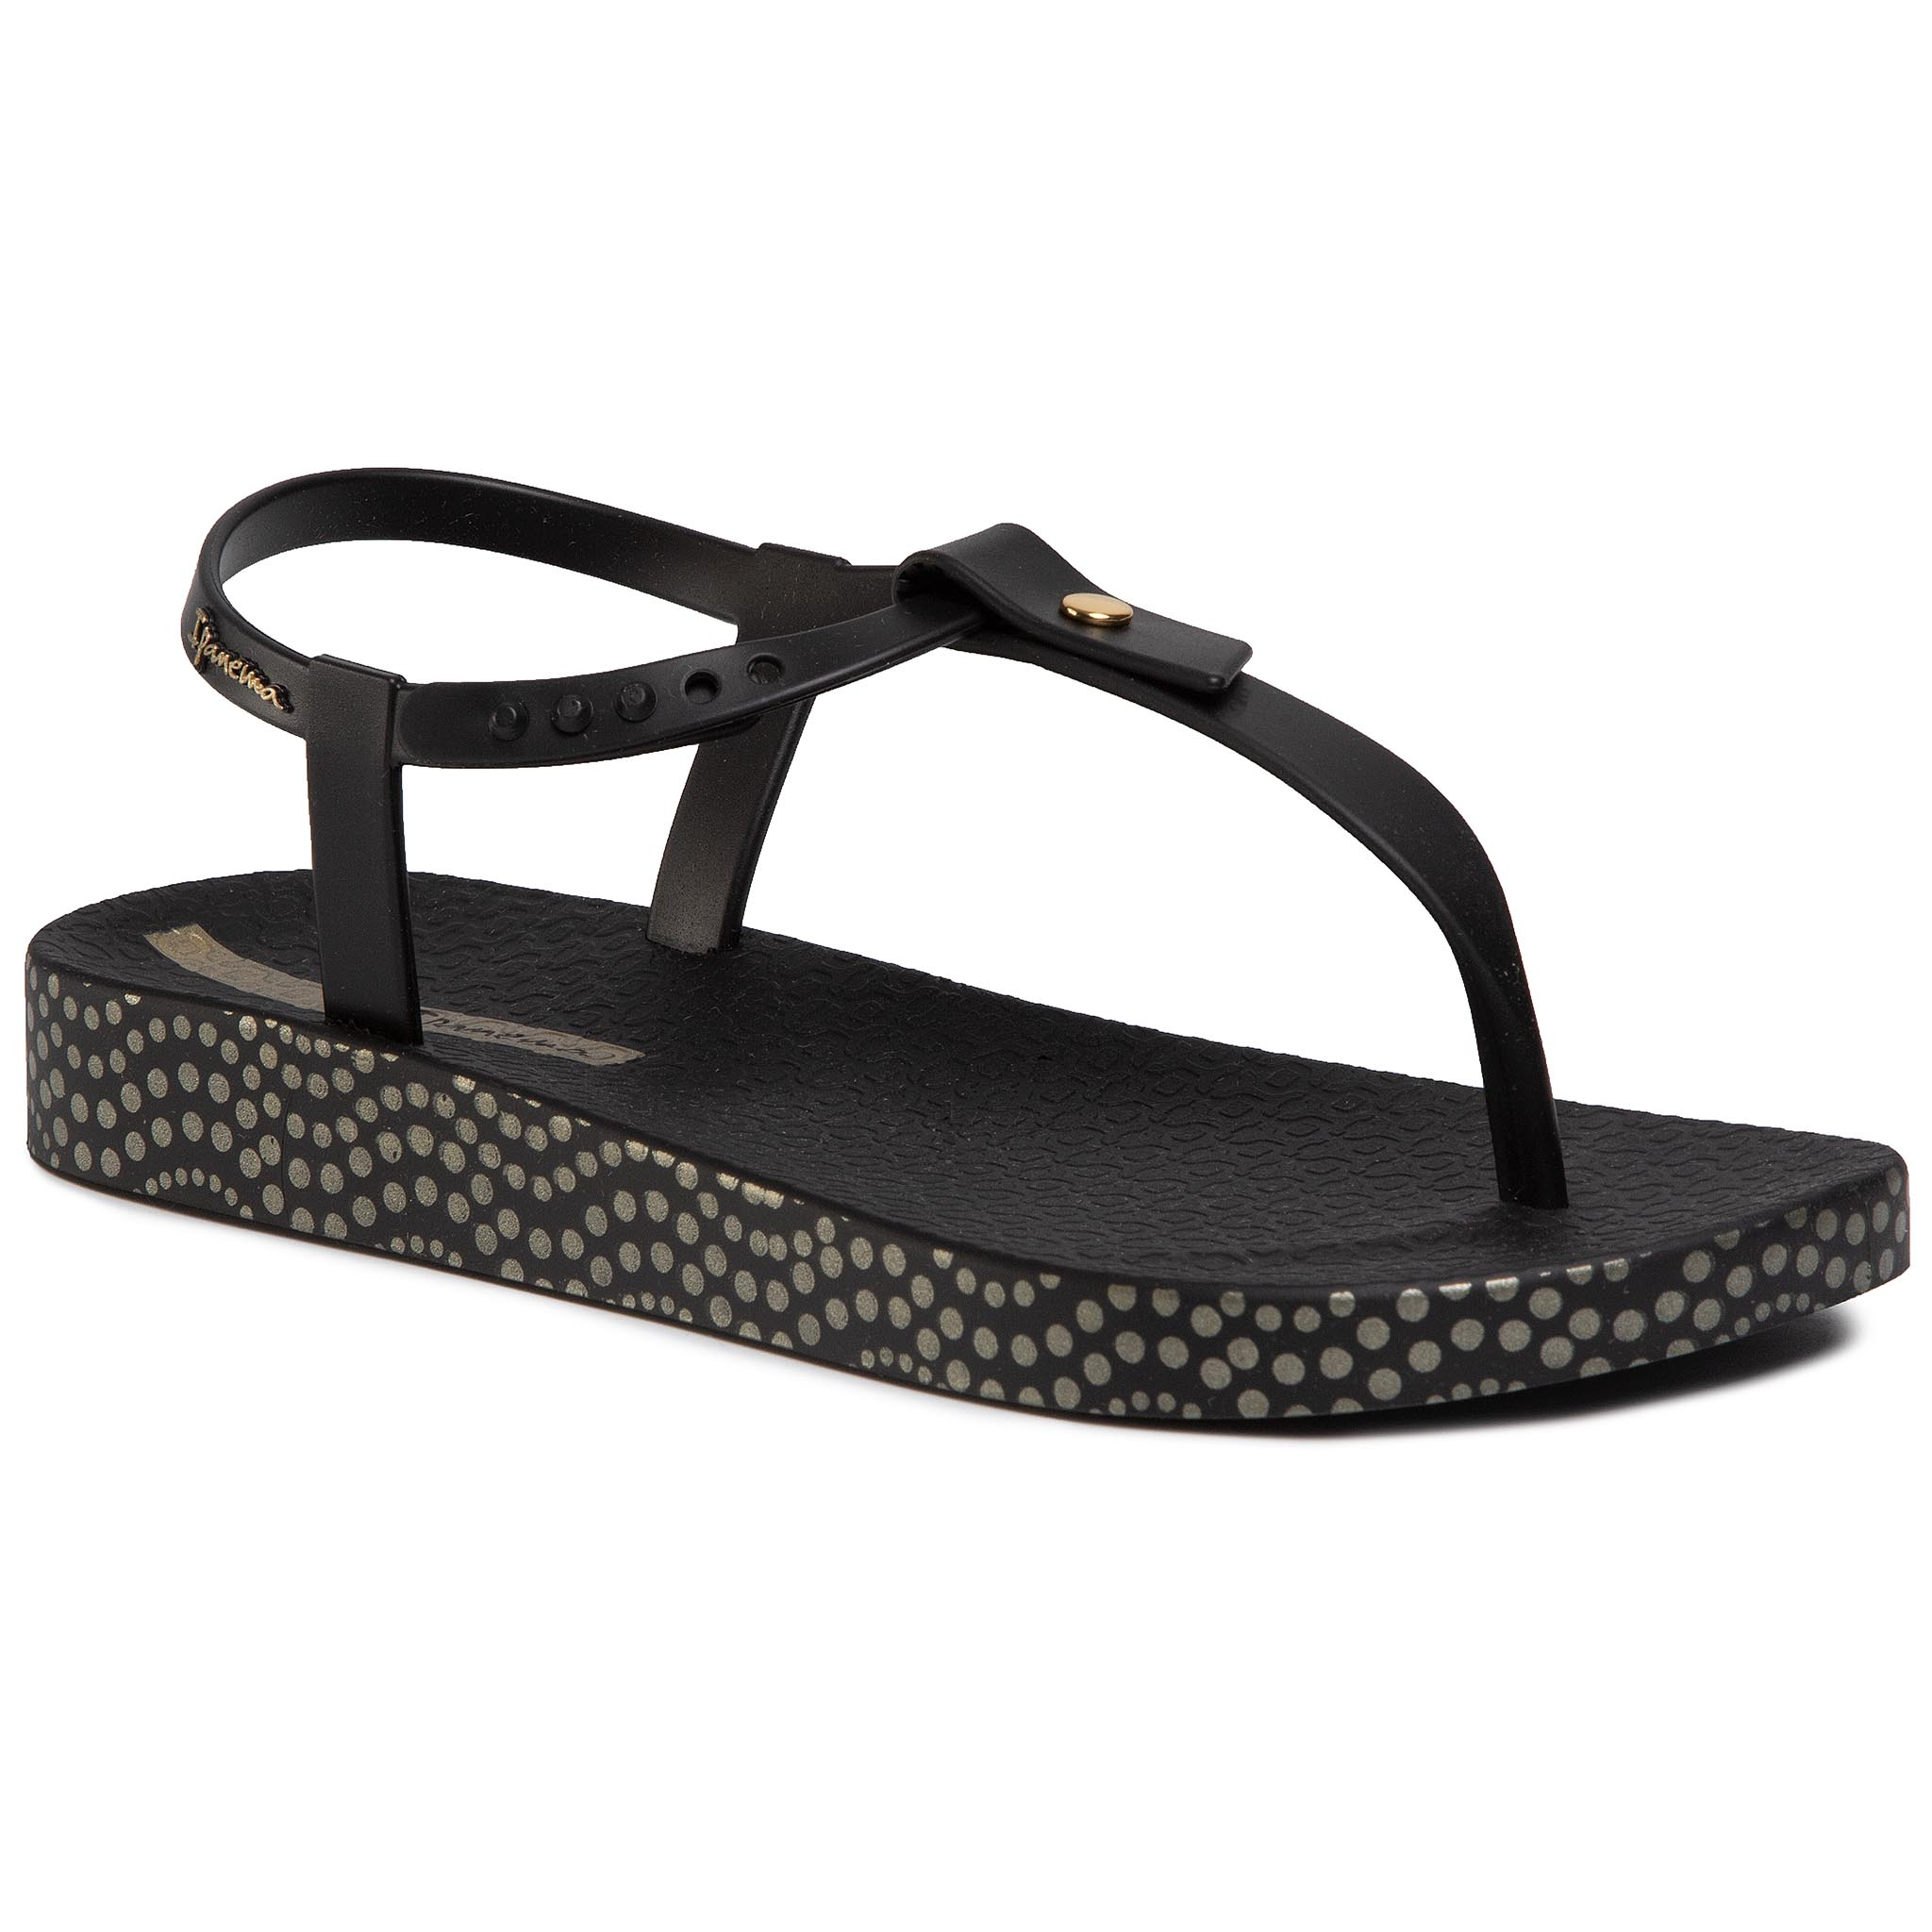 Sandale Ipanema - Bossa Soft Ii Sand 82876 Black/Black 20766 imagine epantofi.ro 2021